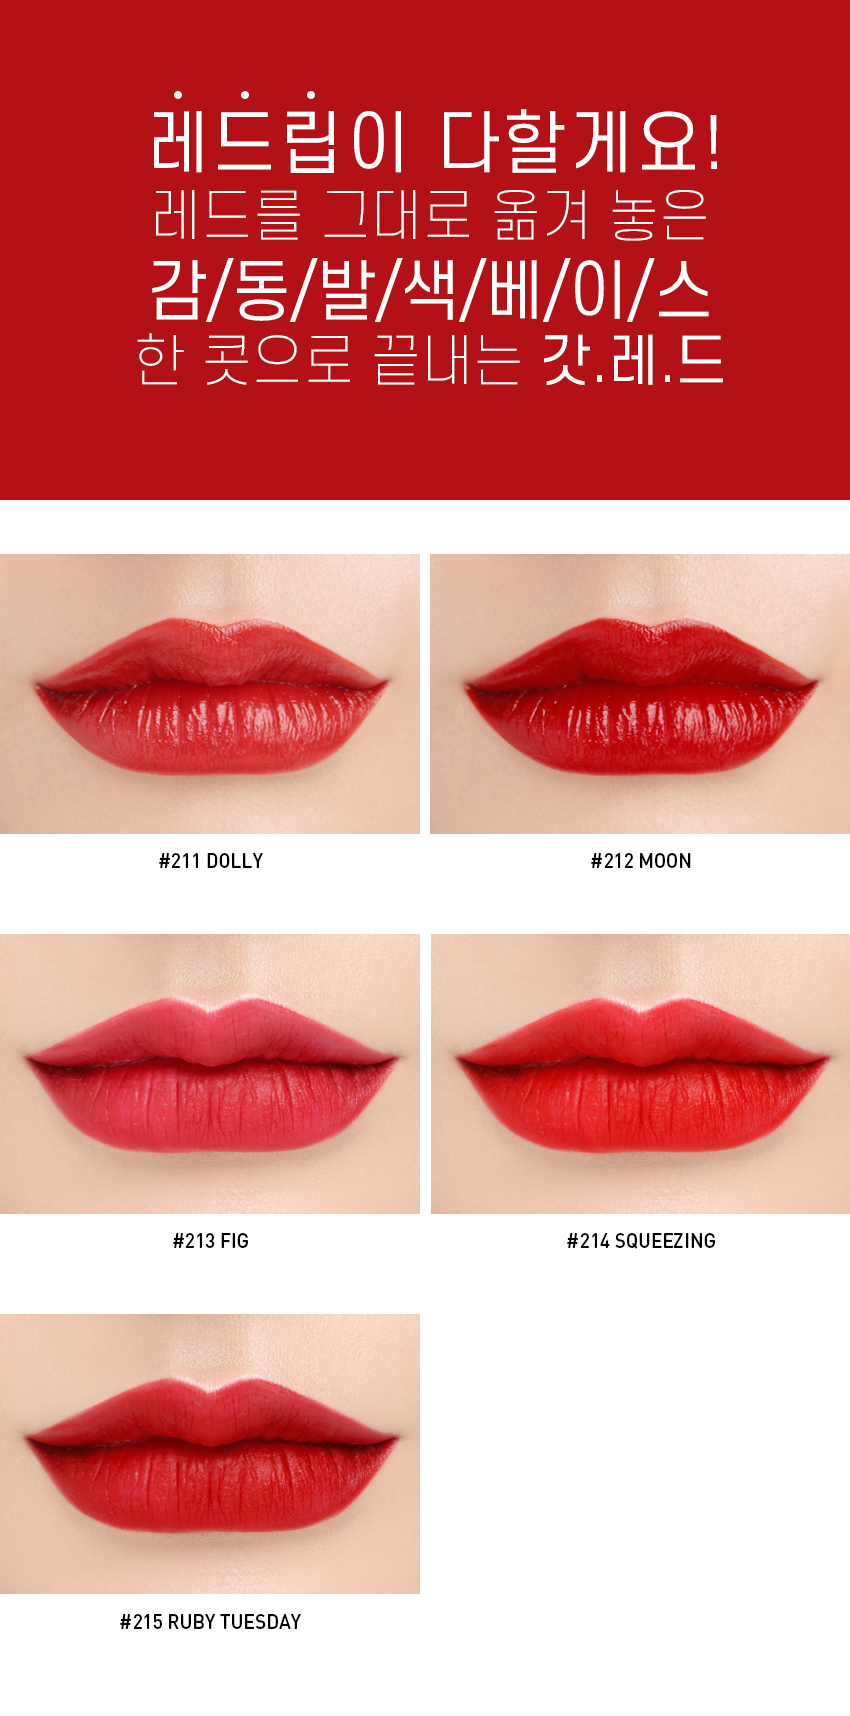 5 thỏi son full-size 3CE Red Recipe Lip Color 1